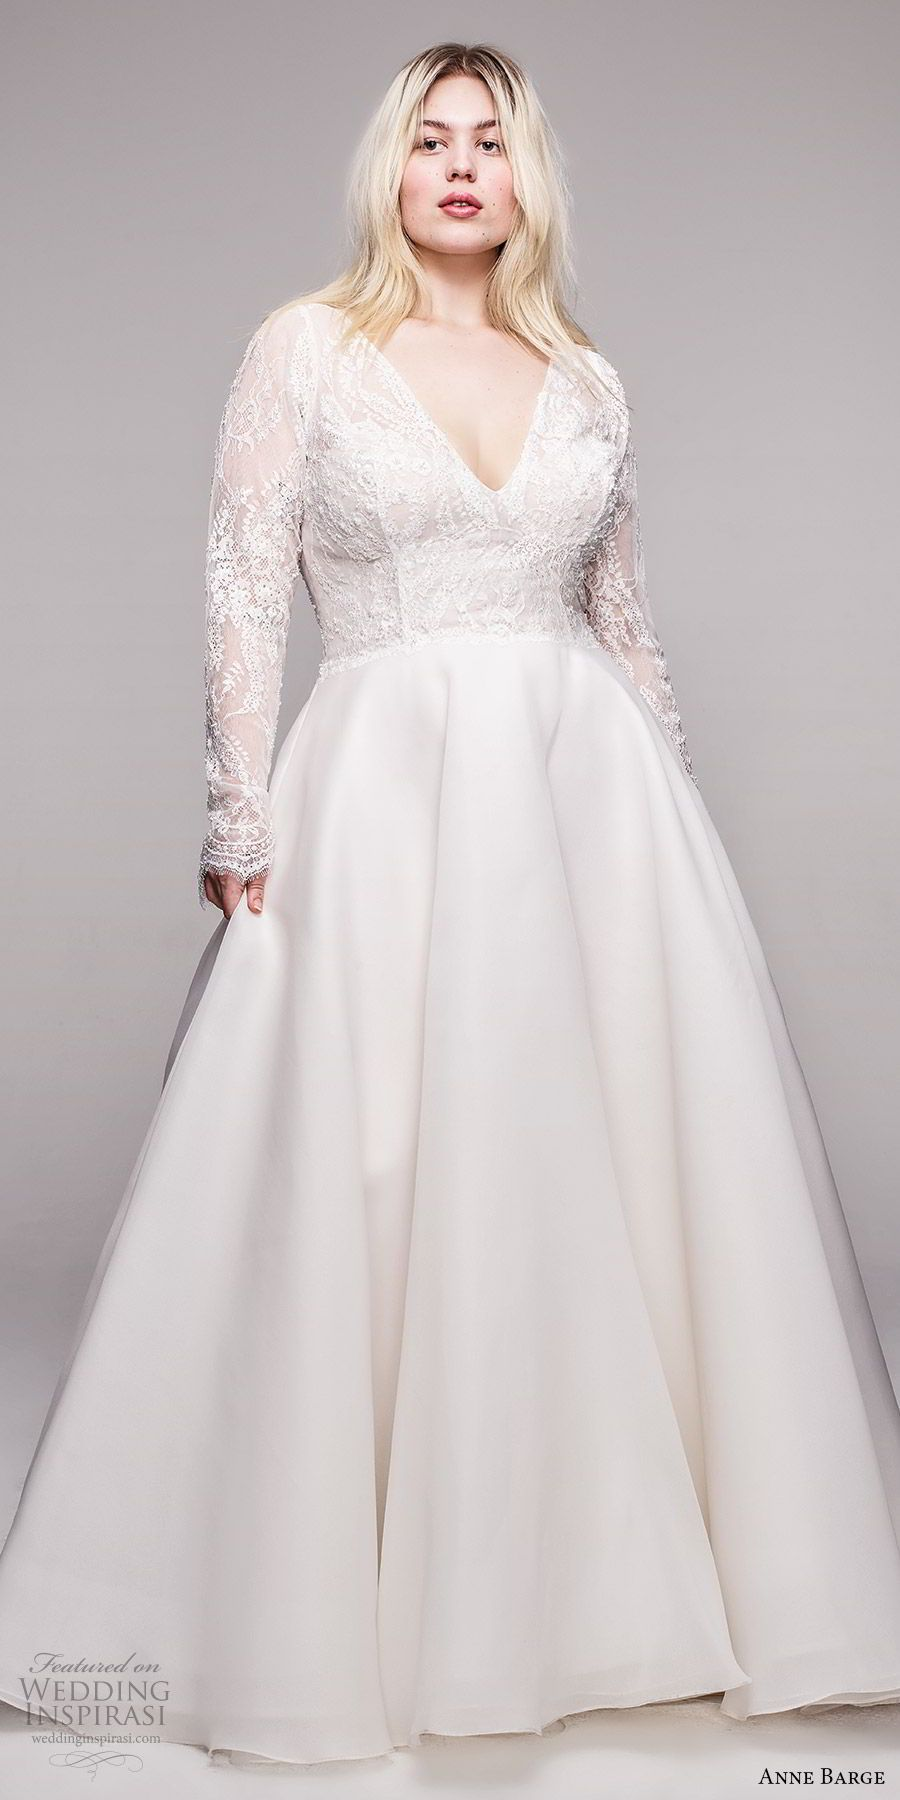 No Extra Size Fee For Anne Barge Curve Couture Collection Wedding Inspirasi Plus Wedding Dresses Wedding Dress Couture A Line Wedding Dress [ 1800 x 900 Pixel ]